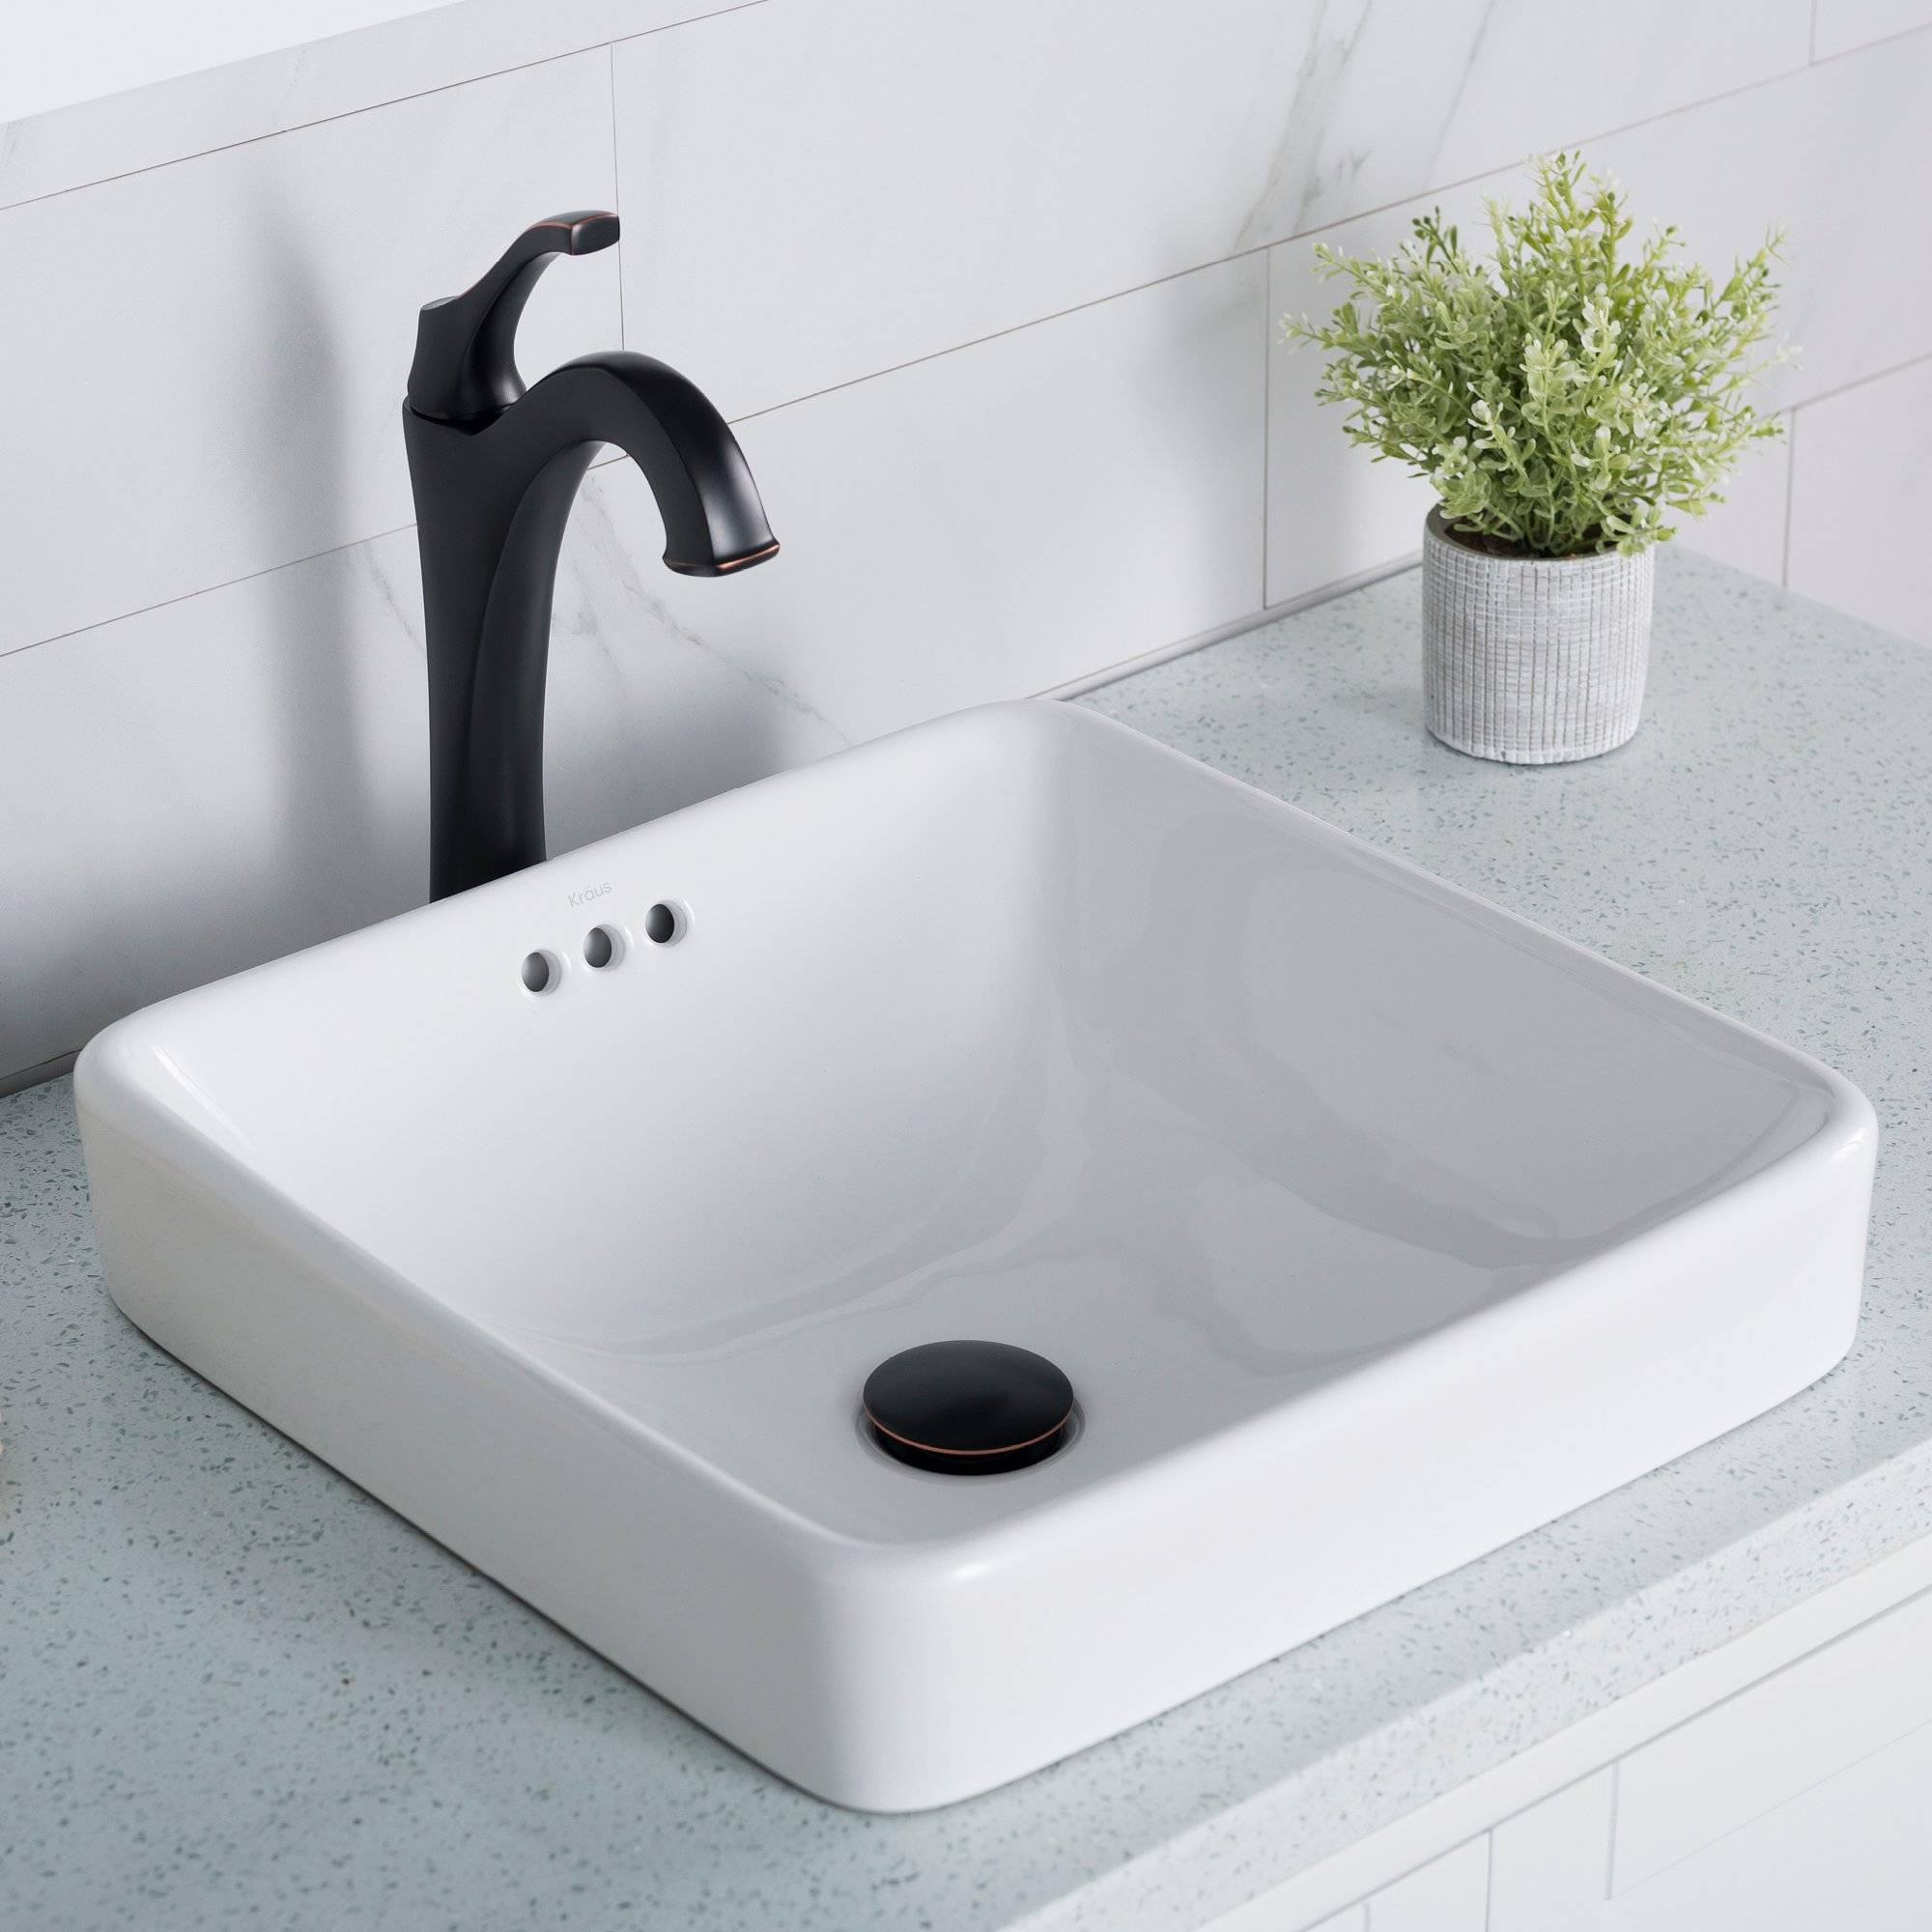 CDM product Kraus KCR-281 Modern Elavo Ceramic Square Semi-Recessed Bathroom Sink with Overflow, White big image